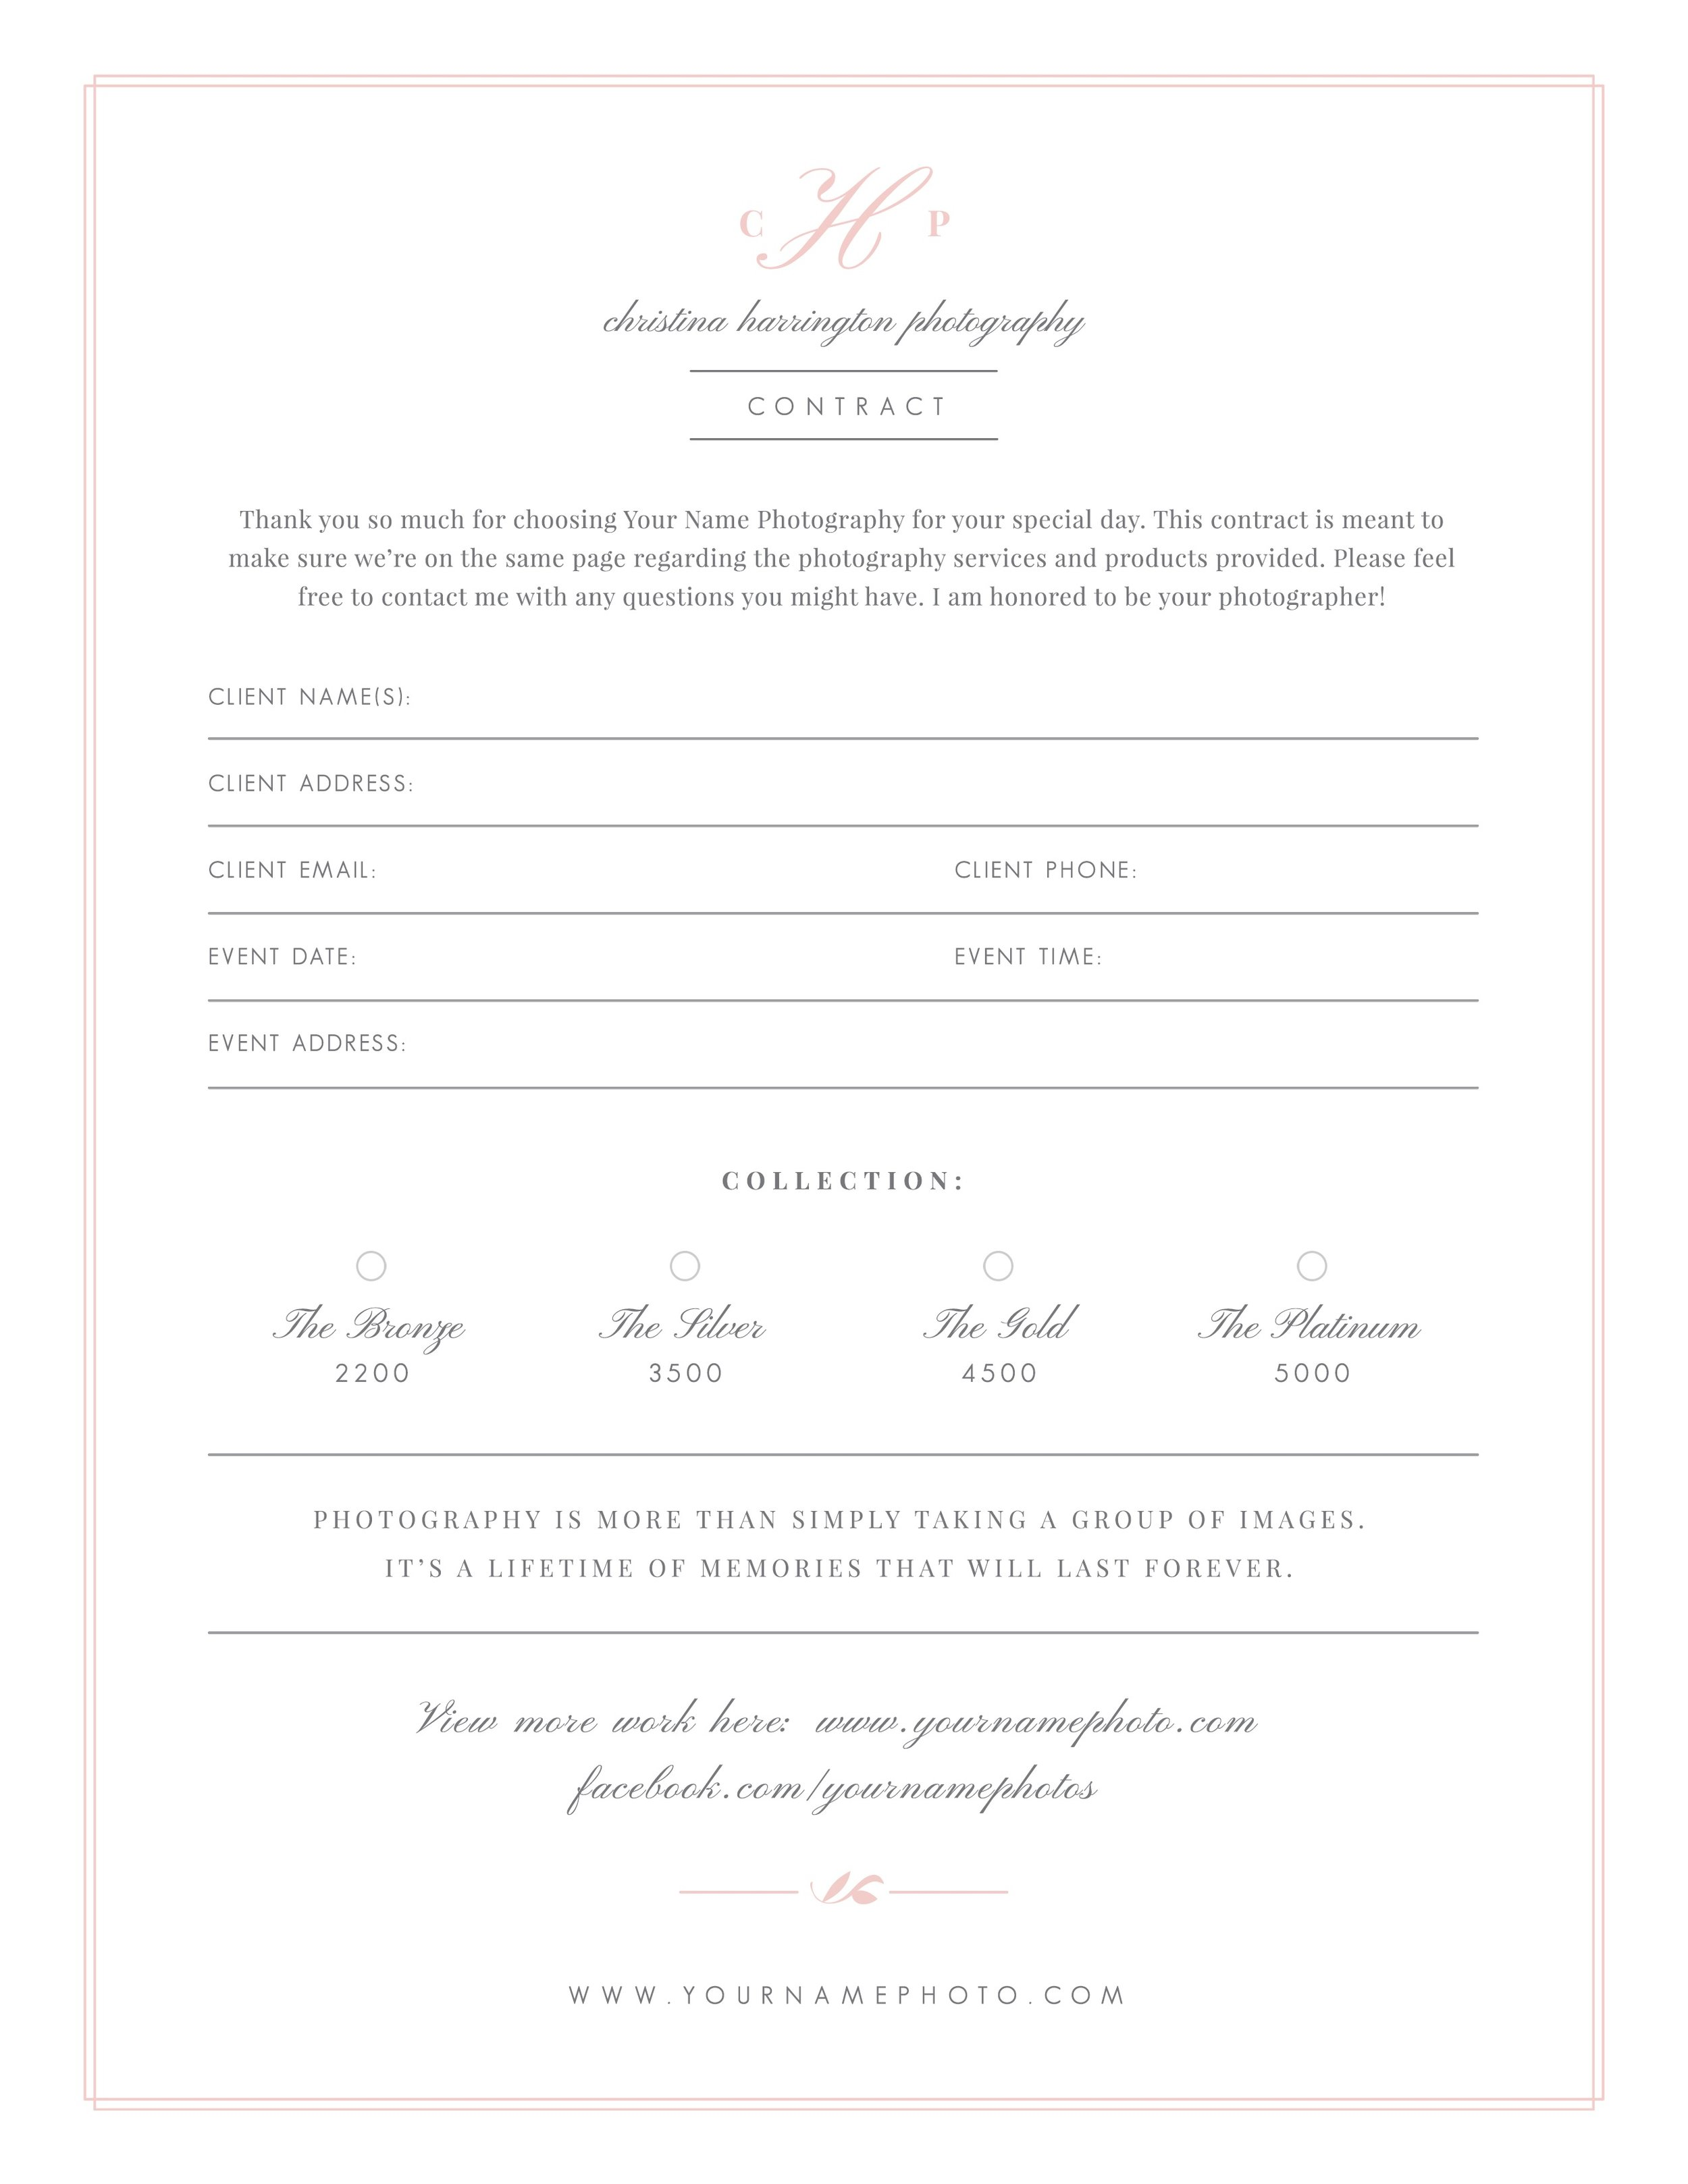 Wedding Photography Contract Template from images.squarespace-cdn.com